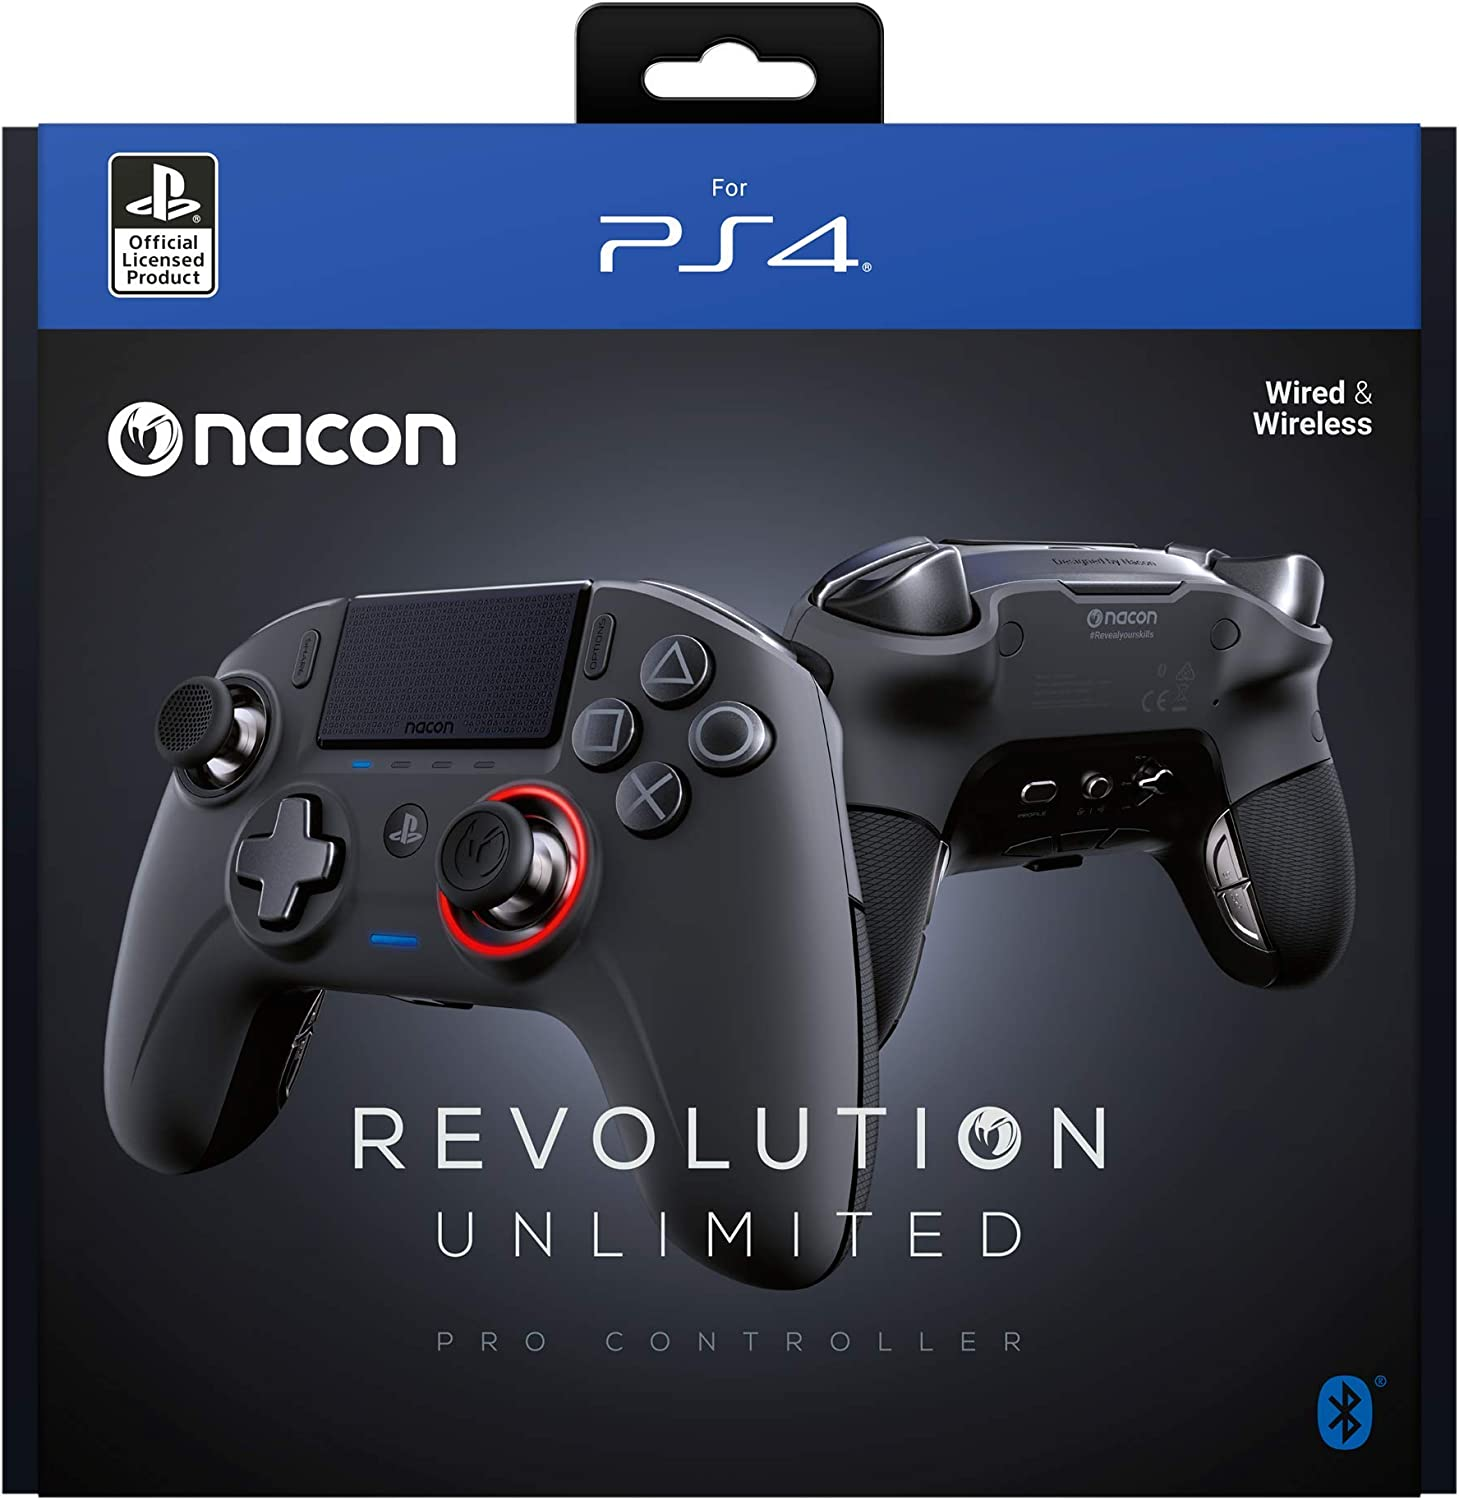 Nacon - Controlador ps4 Revolution Unlimited Pro.: Amazon.es ...